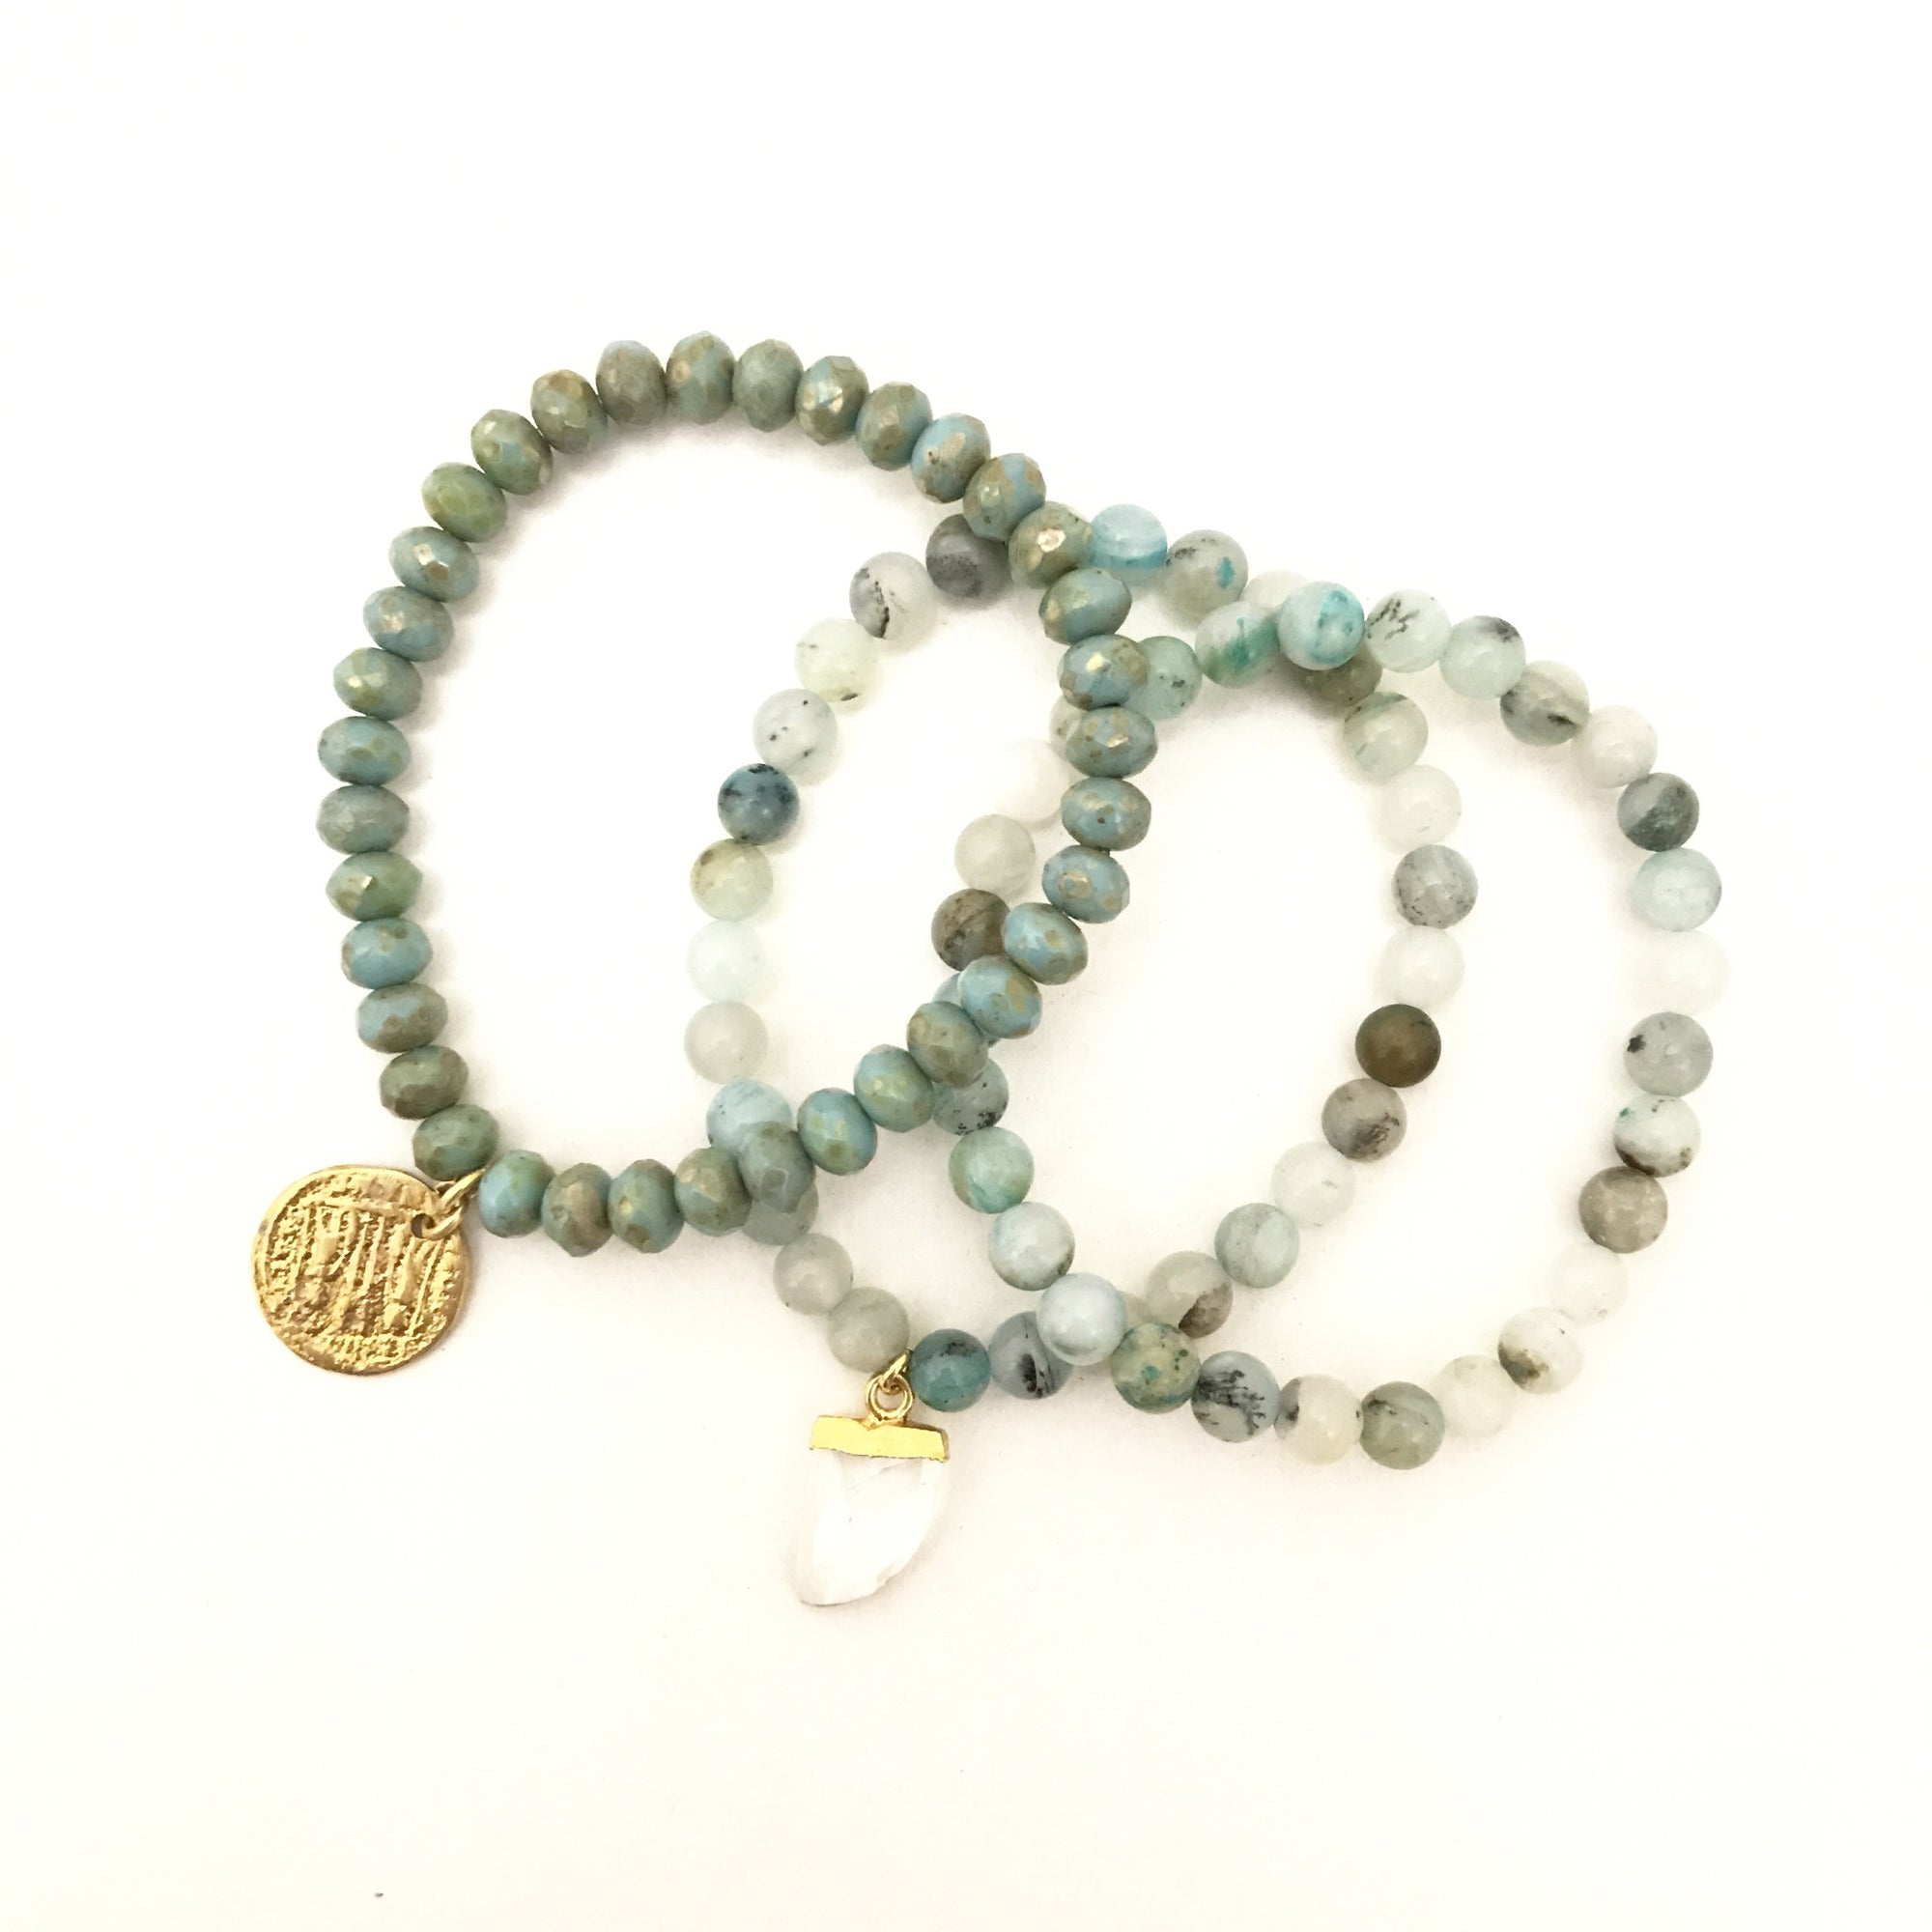 Mint Beaded Bracelets with Coin Charm